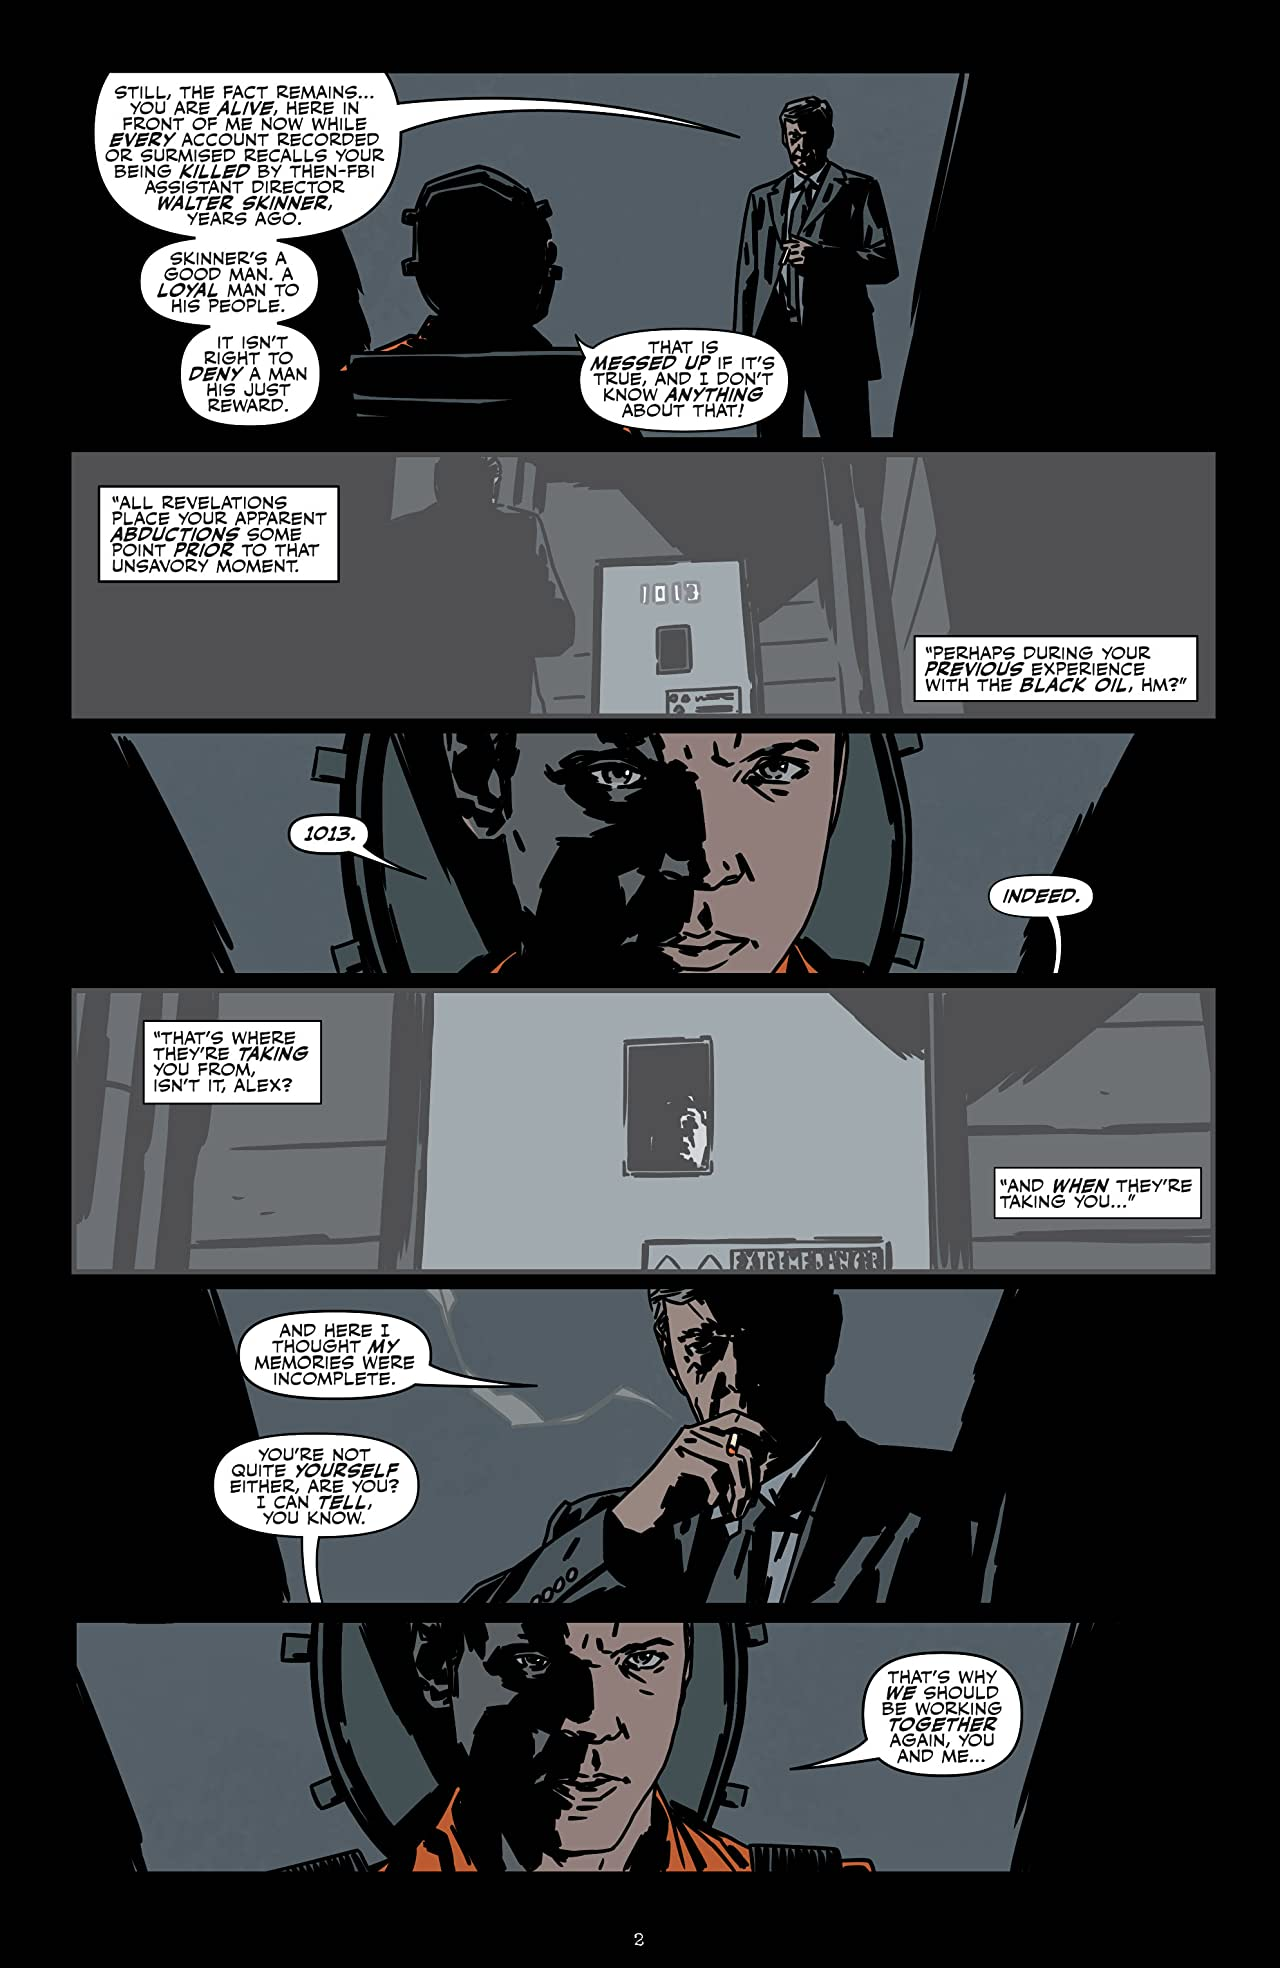 The X-Files: Season 10 #15